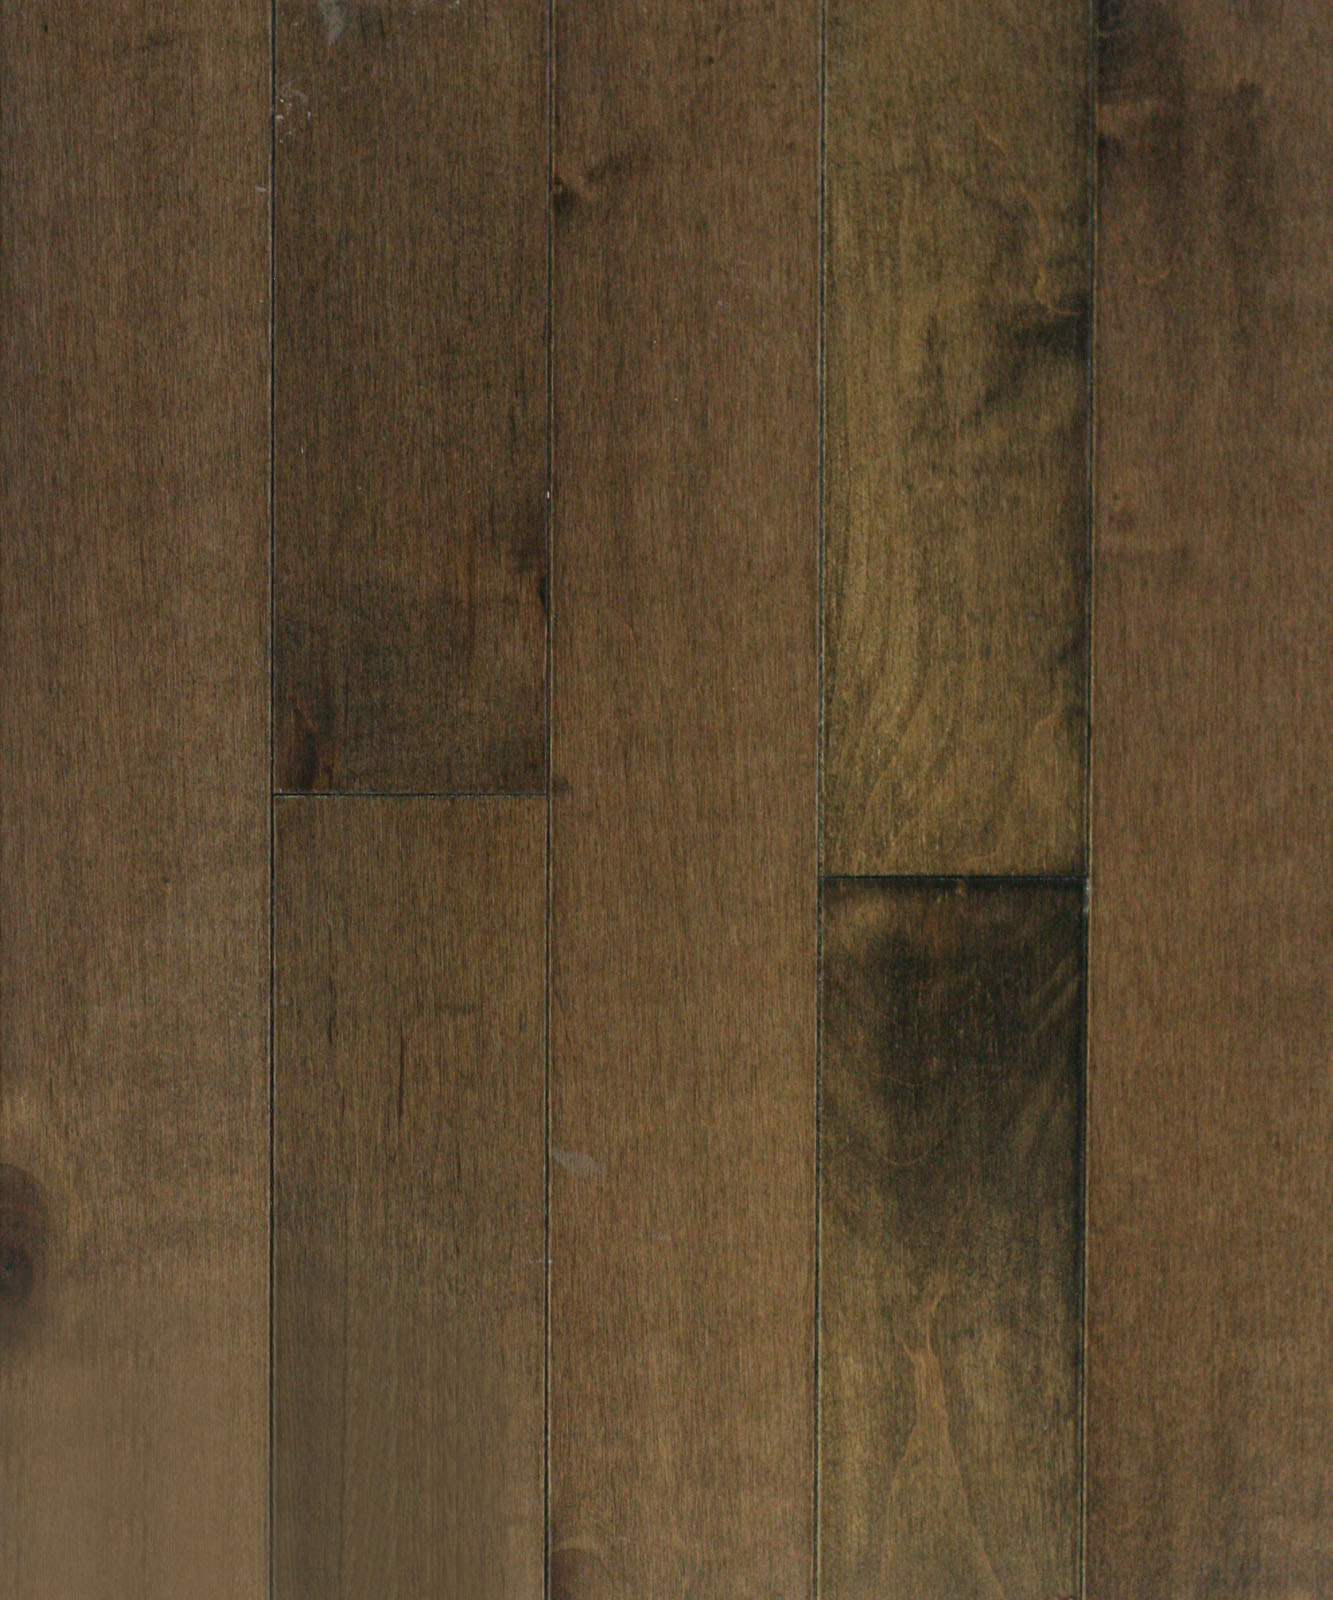 Maple hardwood flooring flooring ideas home for Maple hardwood flooring